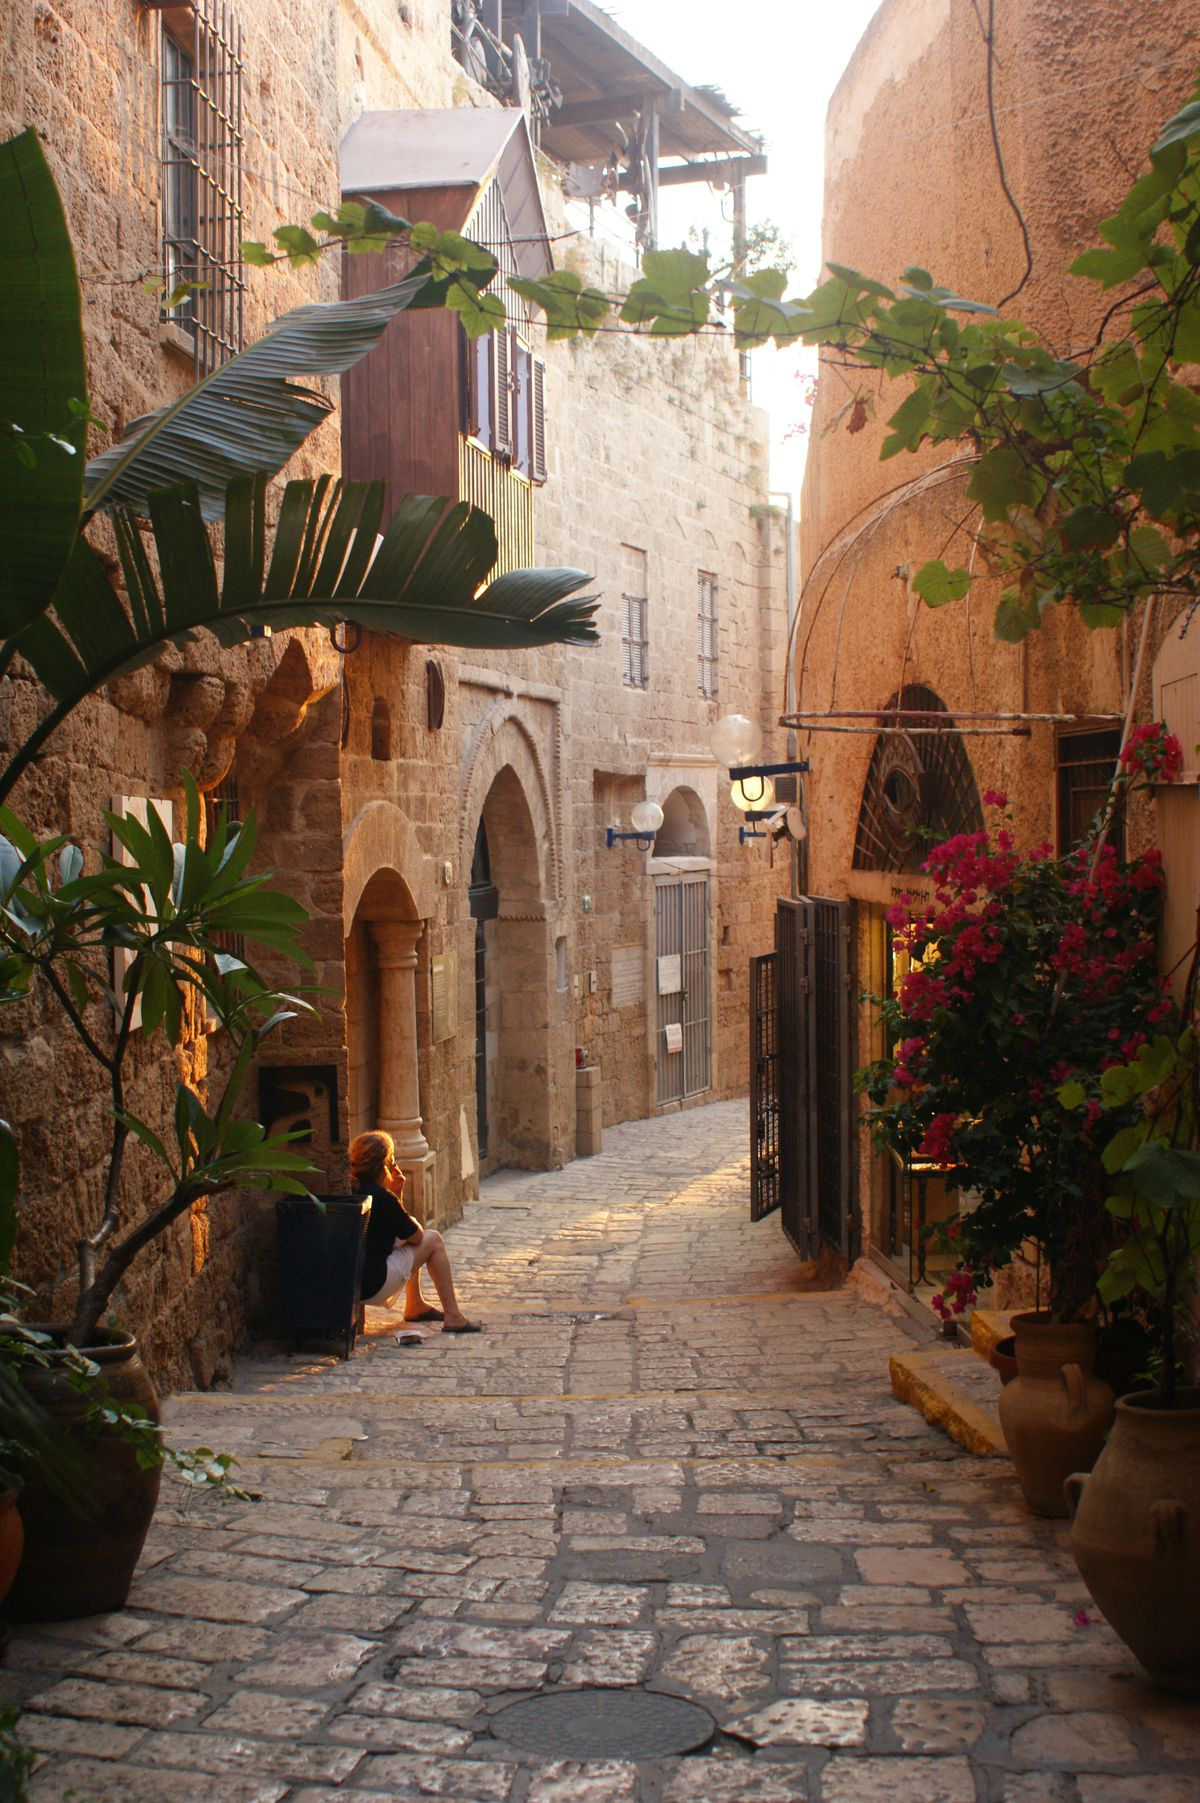 A street in Tel Aviv. The ground is cobblestone, the buildings are stone and there are multiple plants lining the street. A person leans against one of the walls.